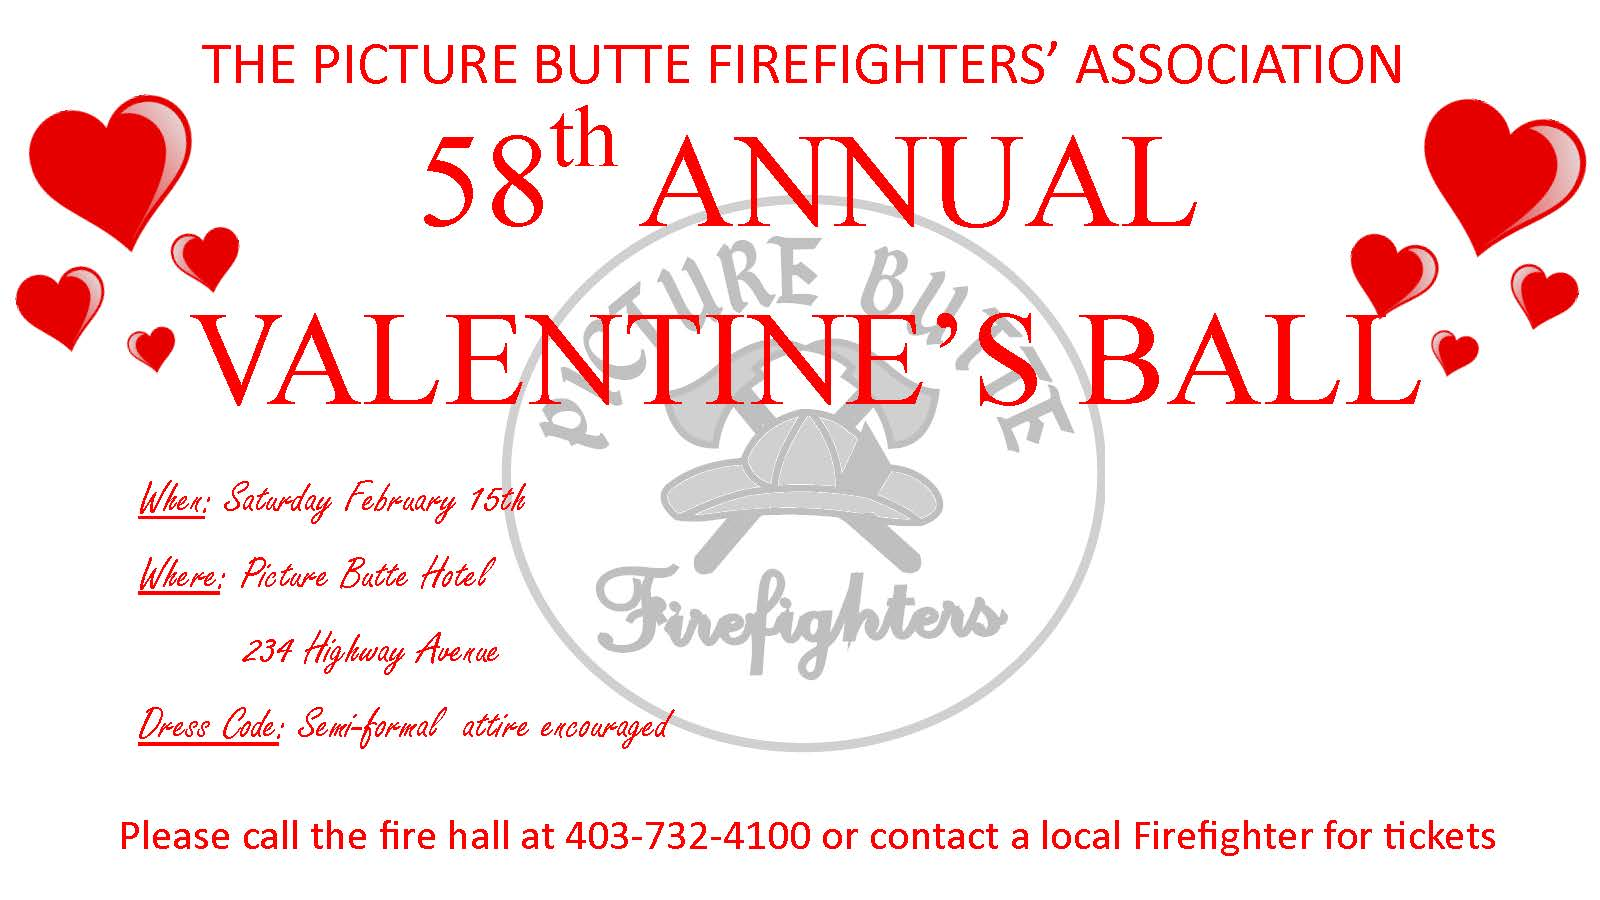 <div id=slideshow_title></div> <br>Please call the Fire Hall at 403-732-4100 or contact a local Firefighter for tickets. Click photo for more information.